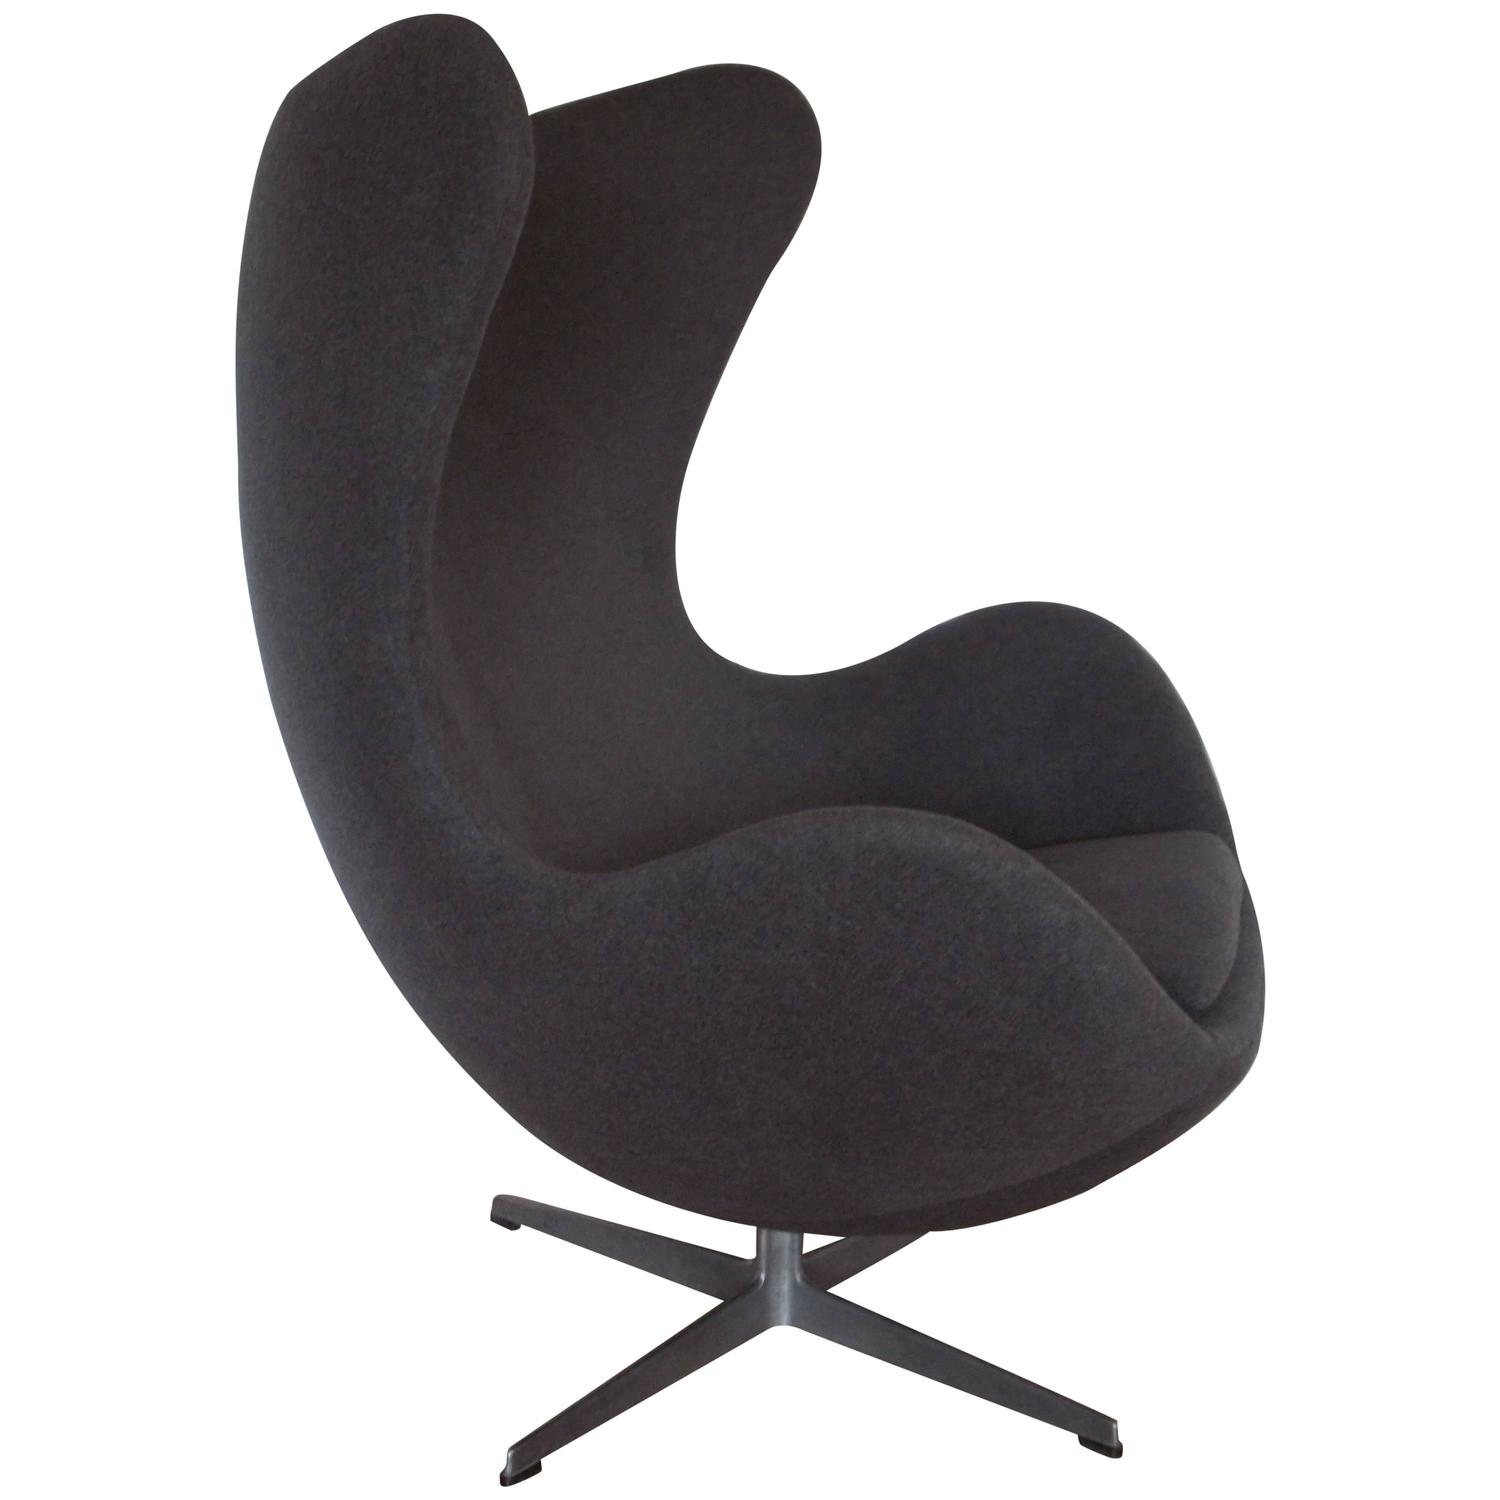 Original Vintage Arne Jacobsen Egg Chair For Fritz Hansen Denmark At 1stdibs